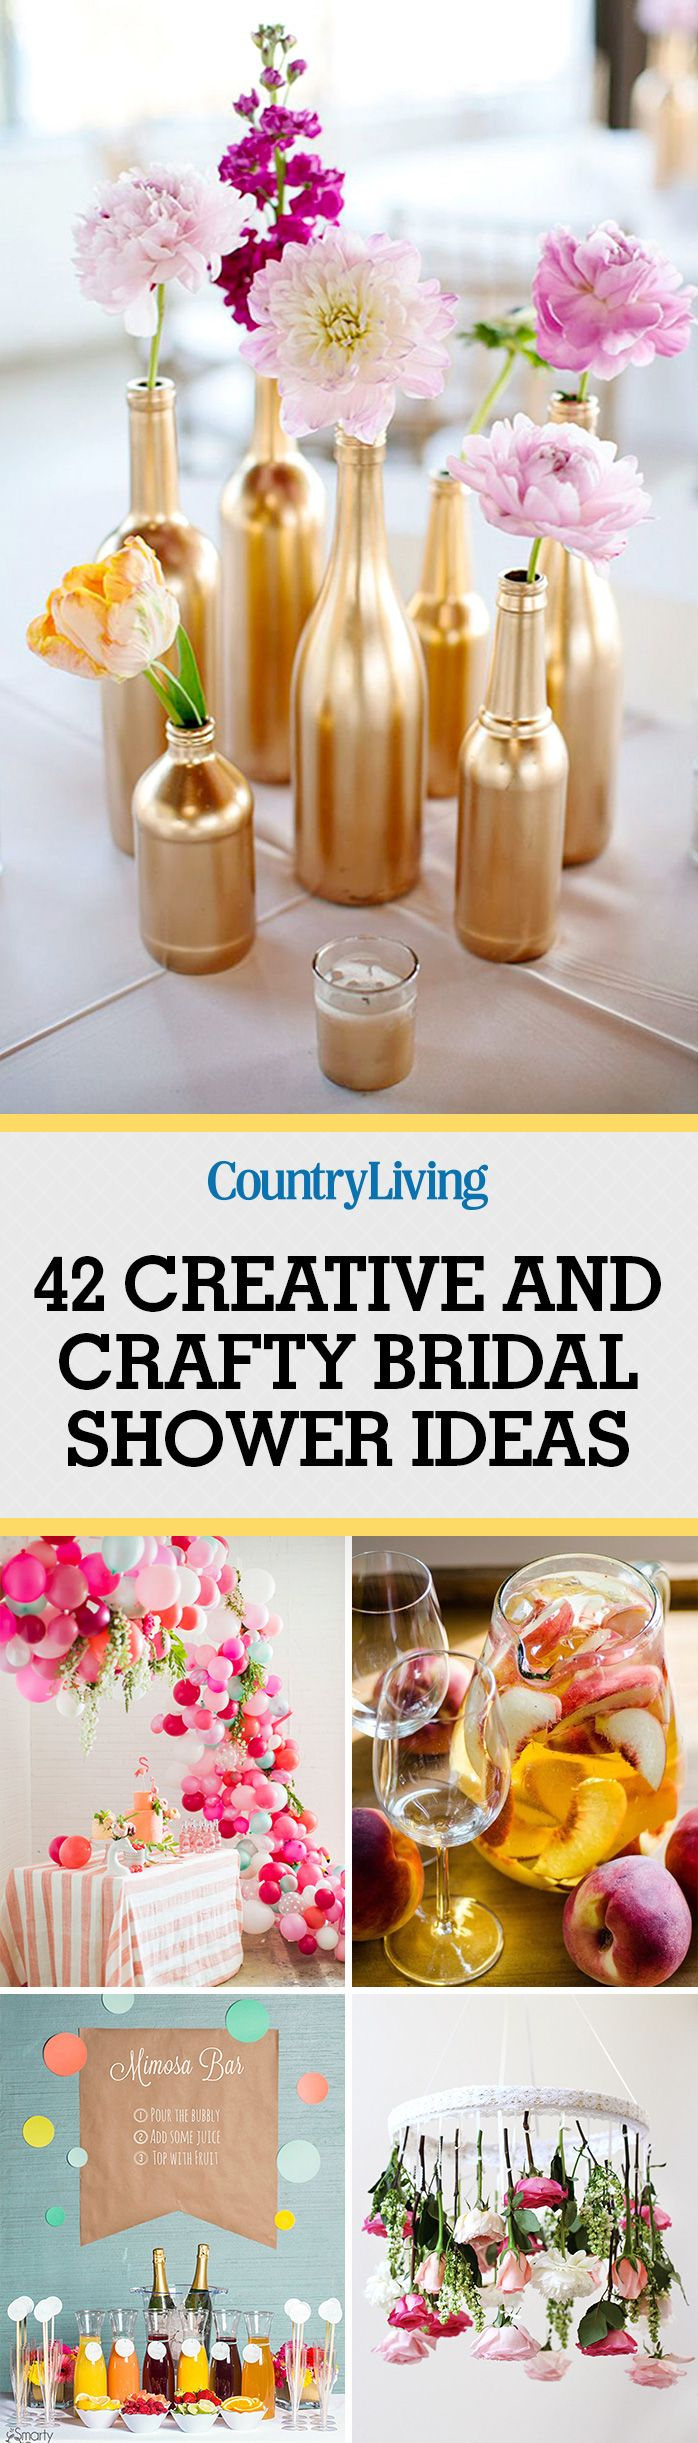 ideas successful wedding gifts shower bridal